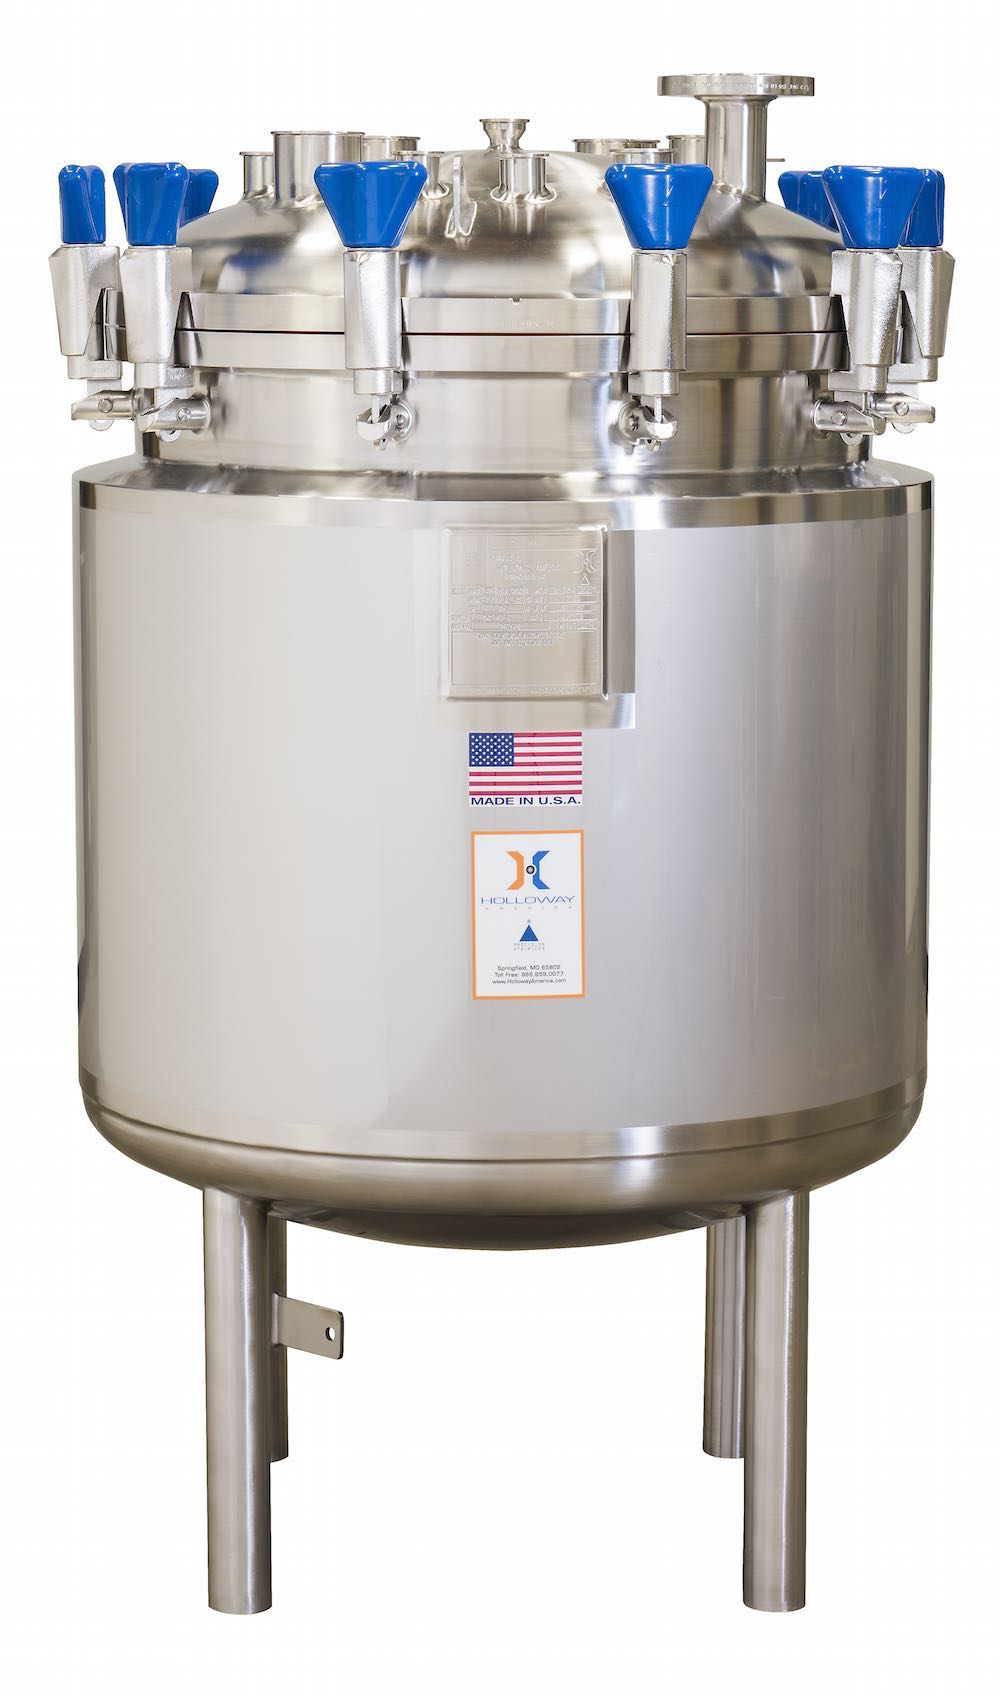 Holloway's ASME pressure vessels are available as CIP vessels, like this one.